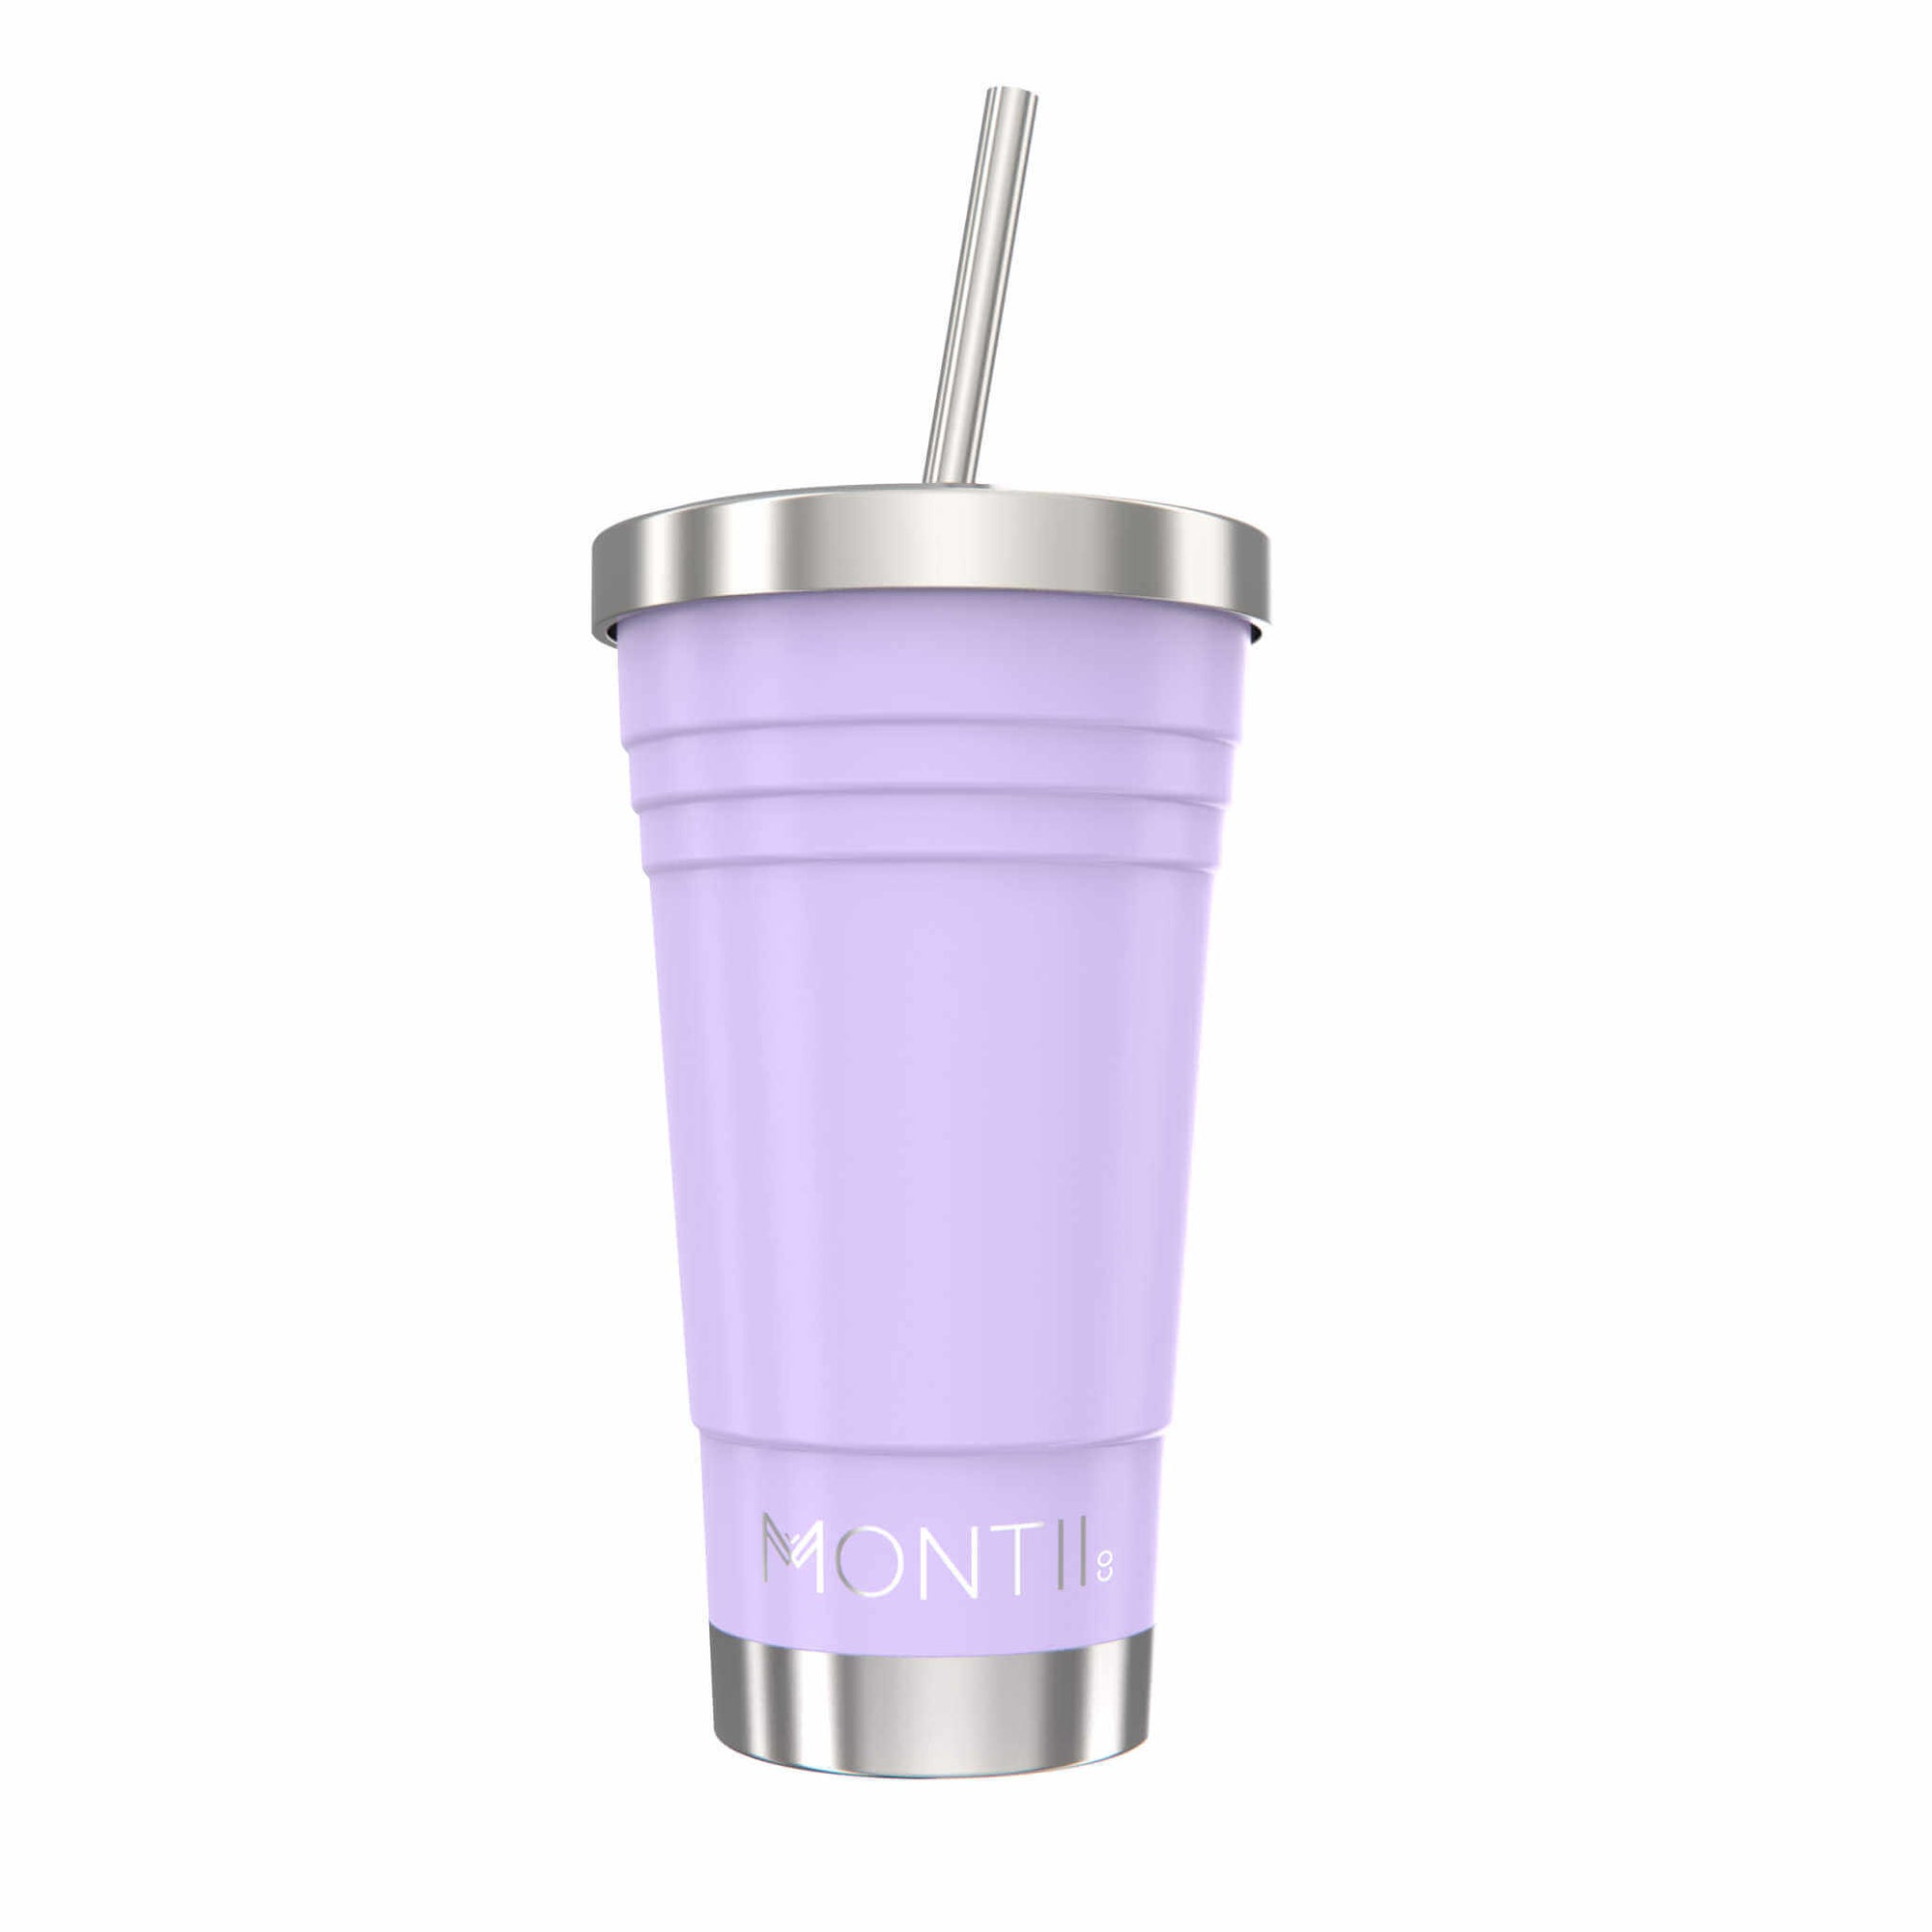 Montii Co Original Smoothie Cup Lavender